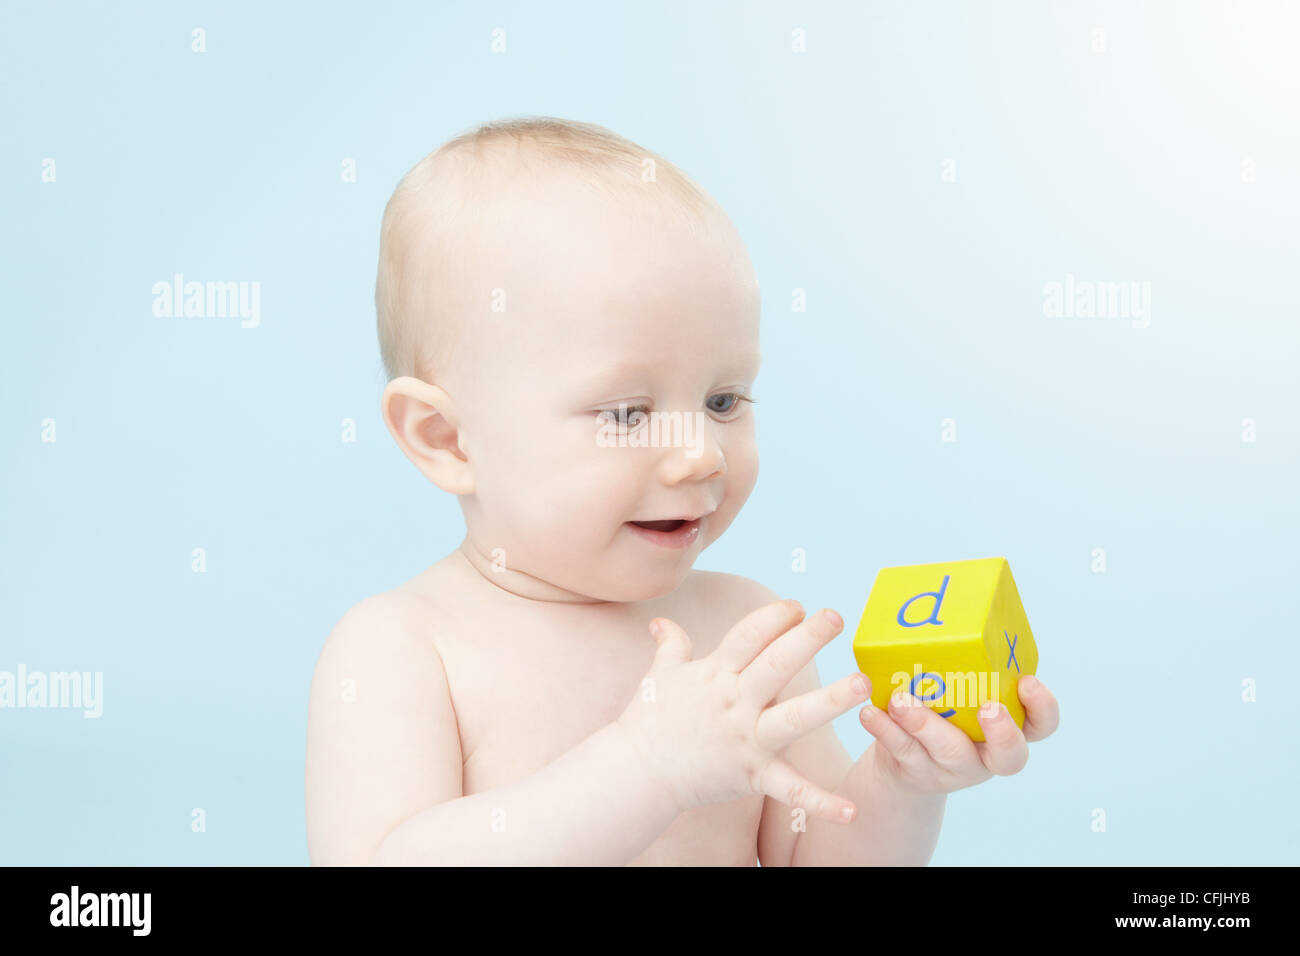 Baby looking at alphabet cube - Stock Image